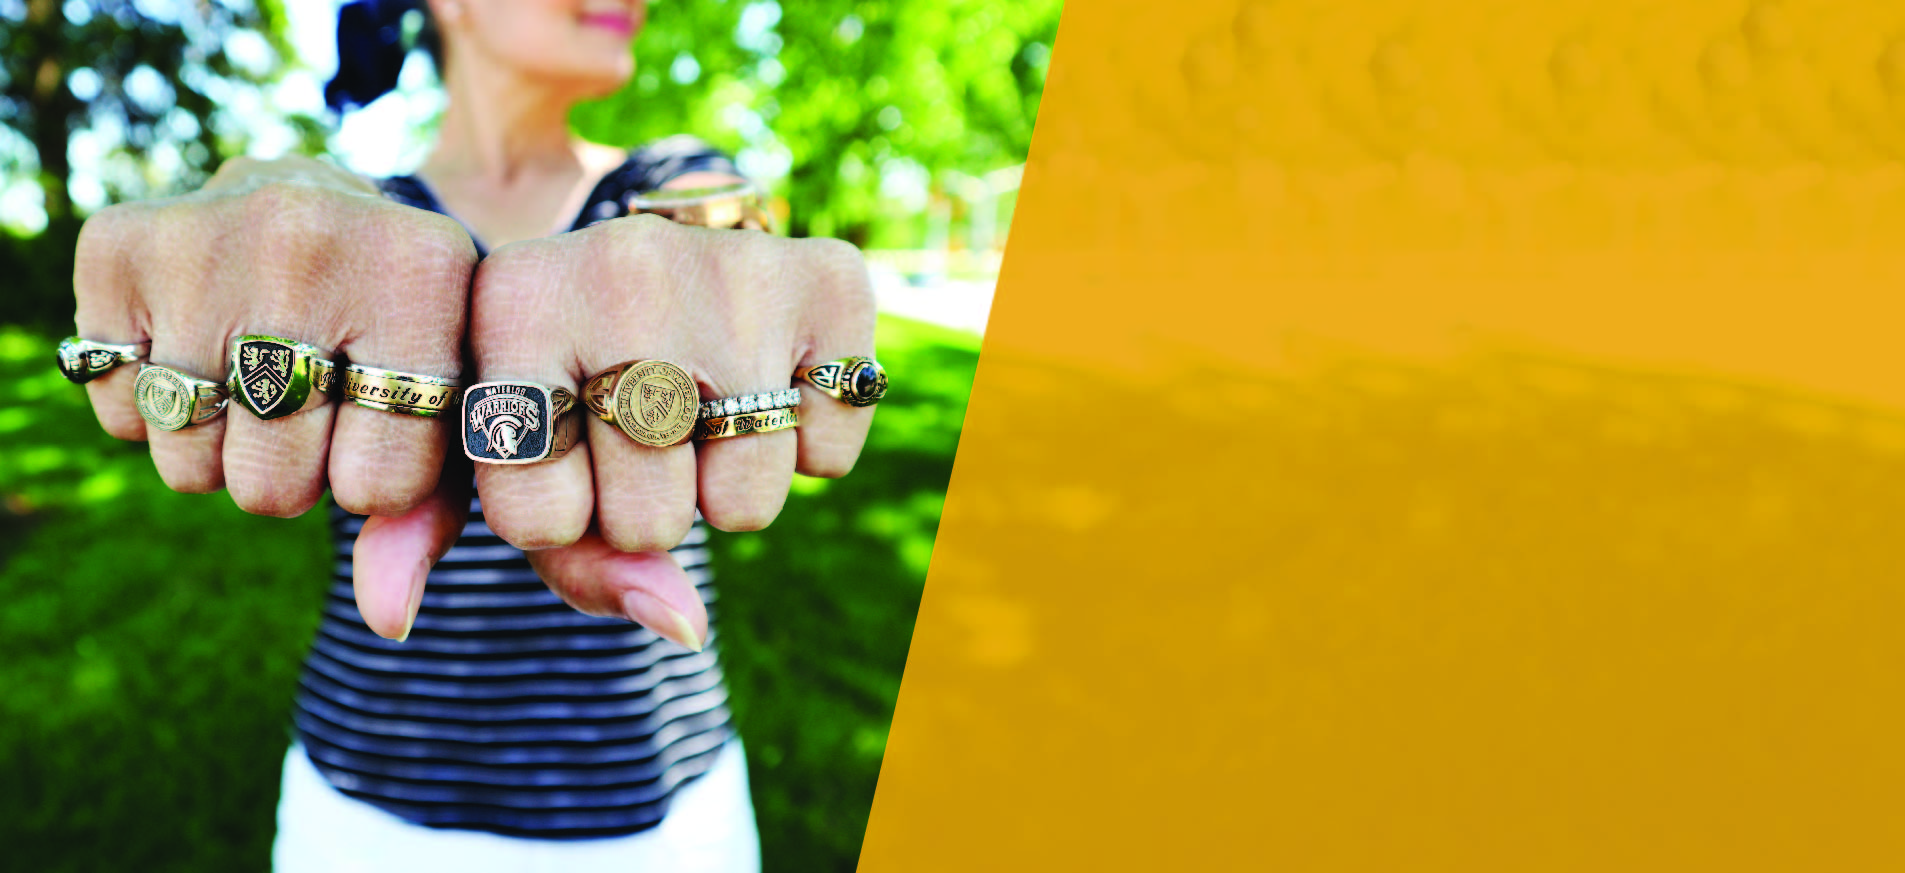 Grad rings on persons hands